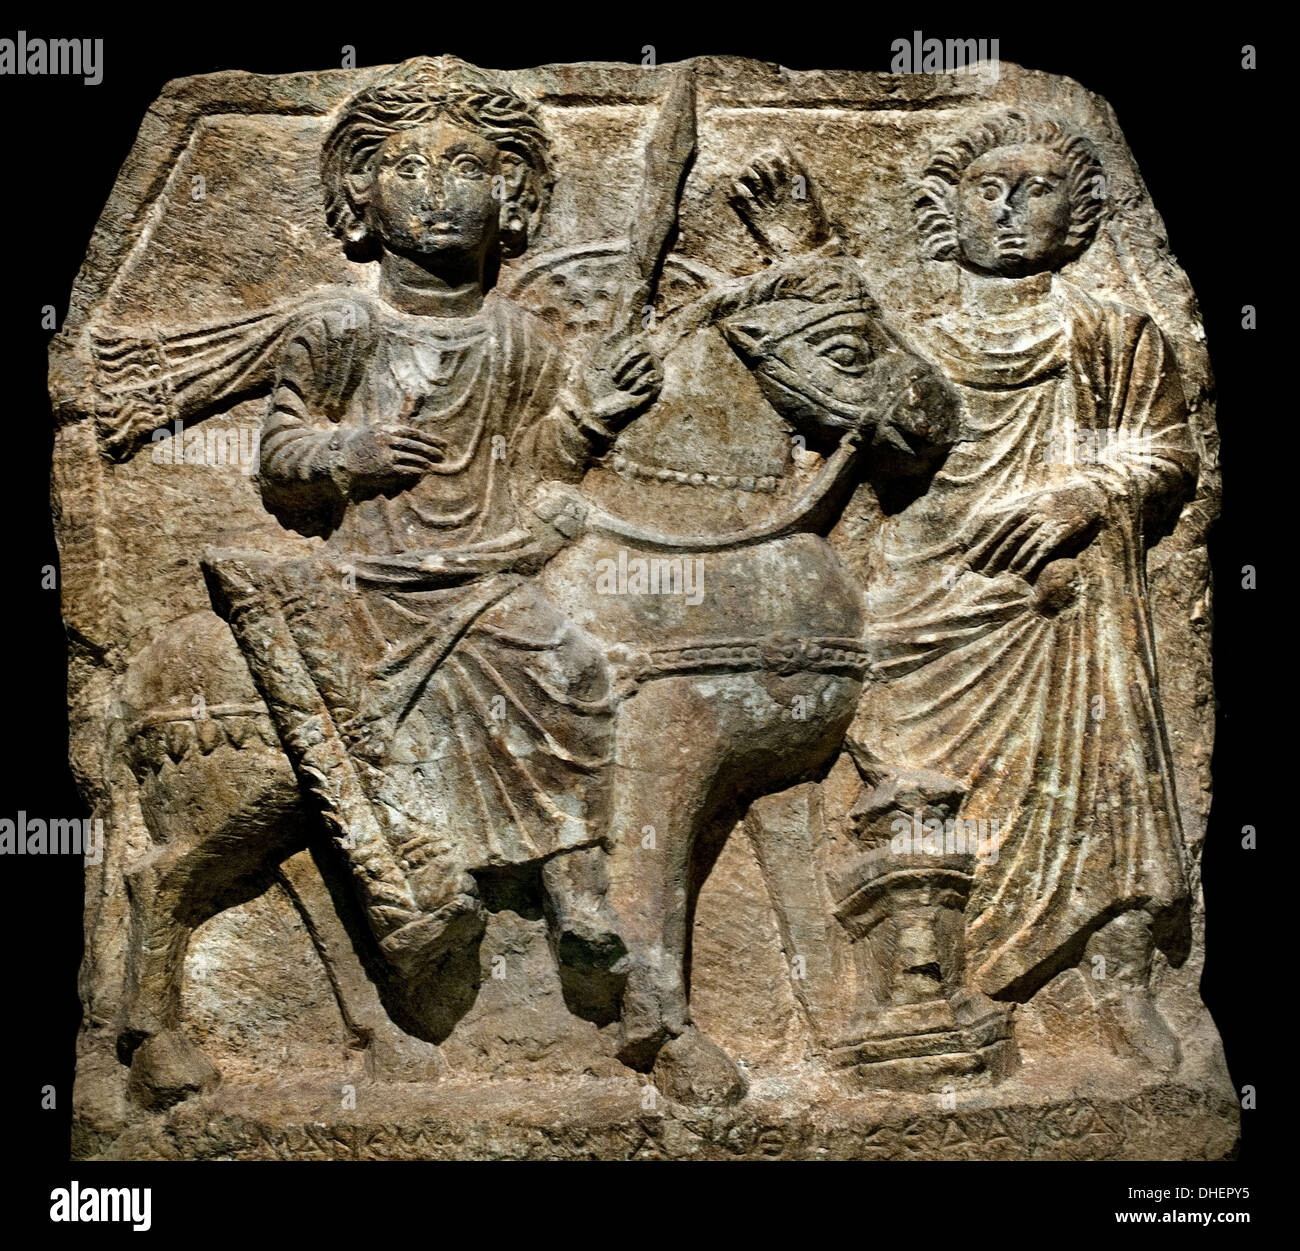 Bas Relief dedicated to the god jumper Maneros II Century AD Dura - Europos Syria - Stock Image